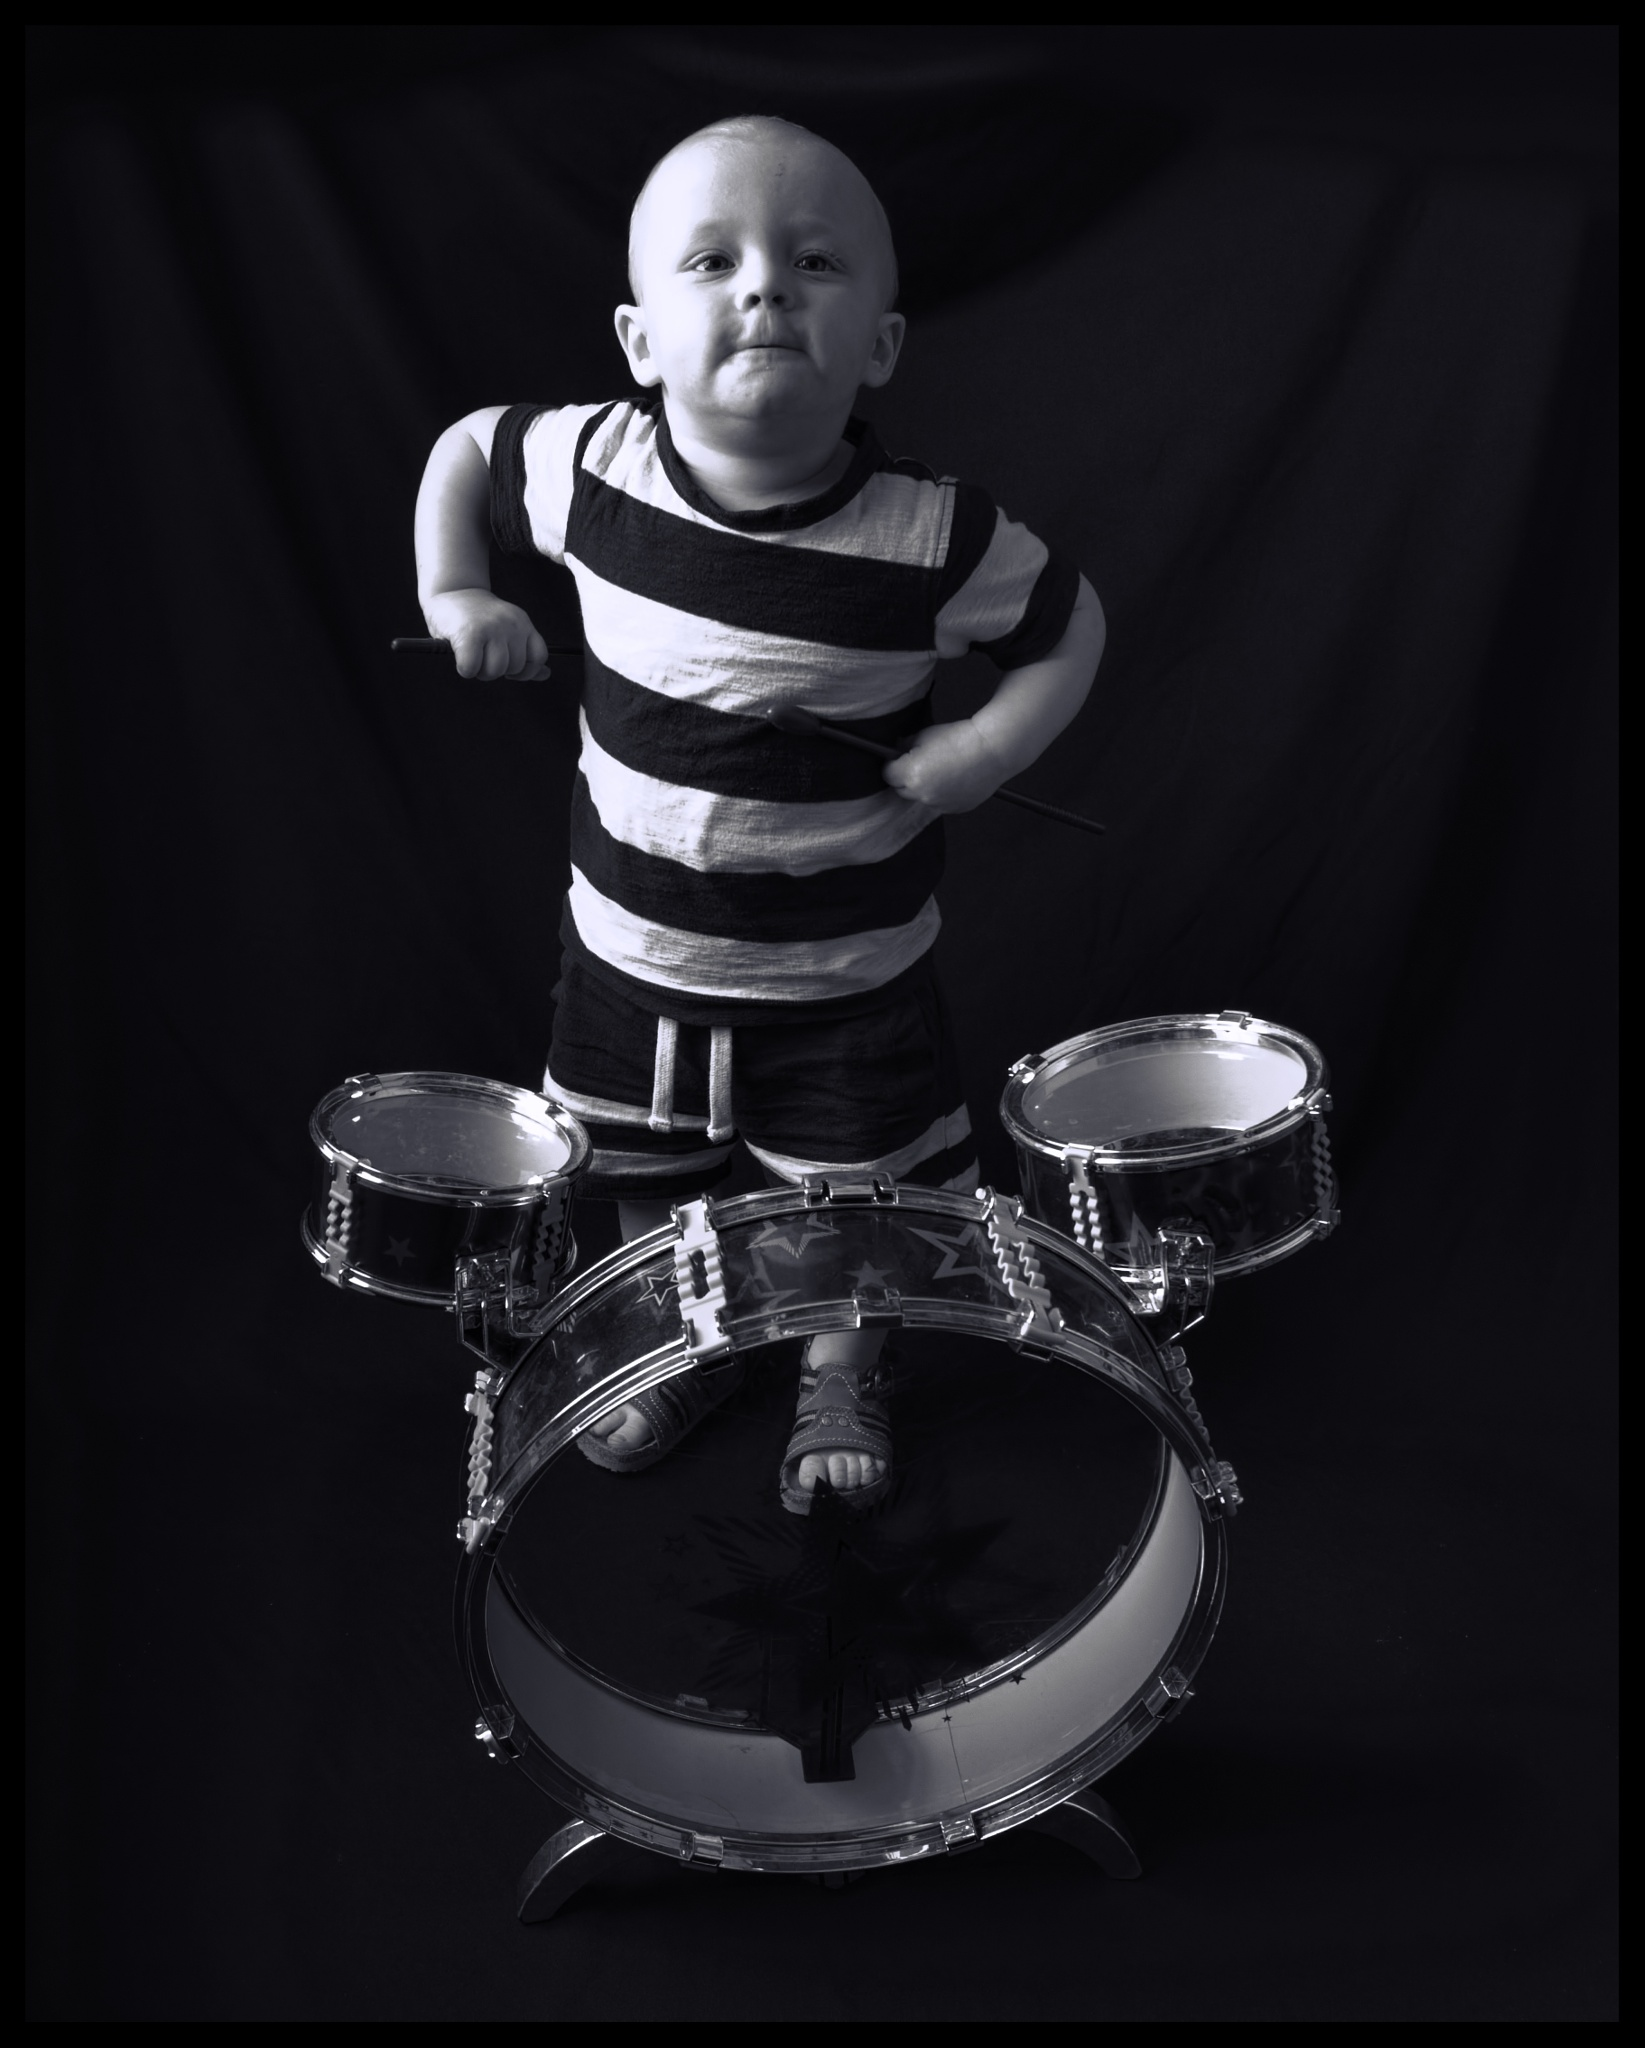 Boisterous grandson by Camera_Obscura